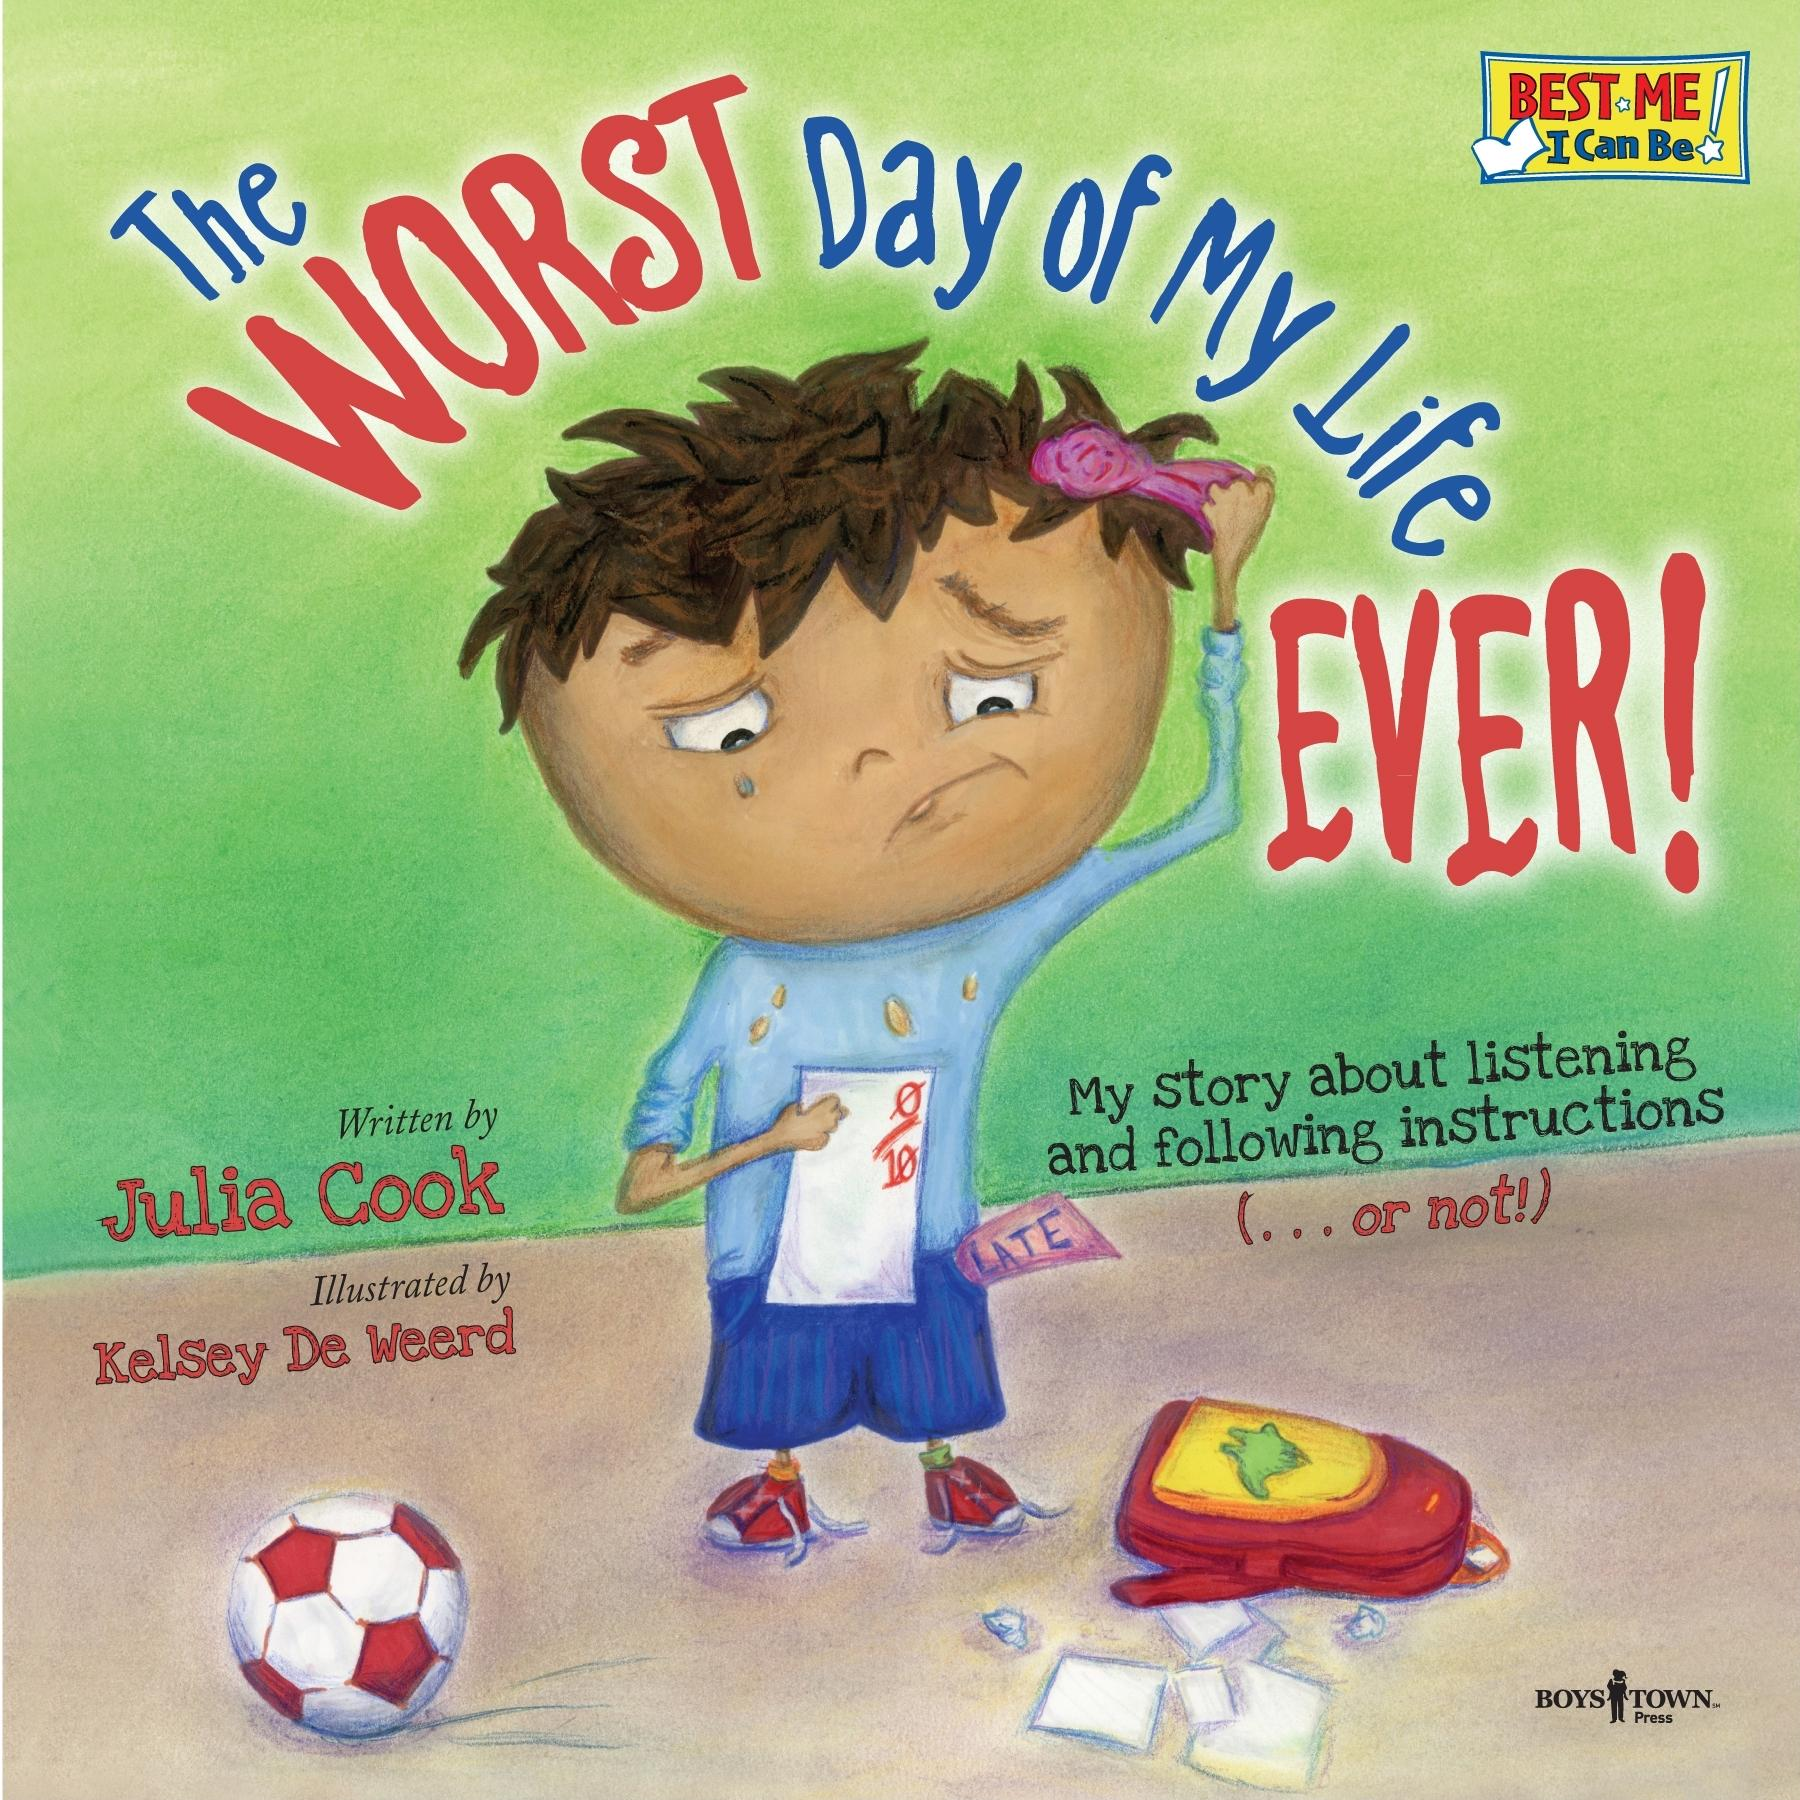 Best Me I Can Be!: The Worst Day of My Life Ever! (Paperback)